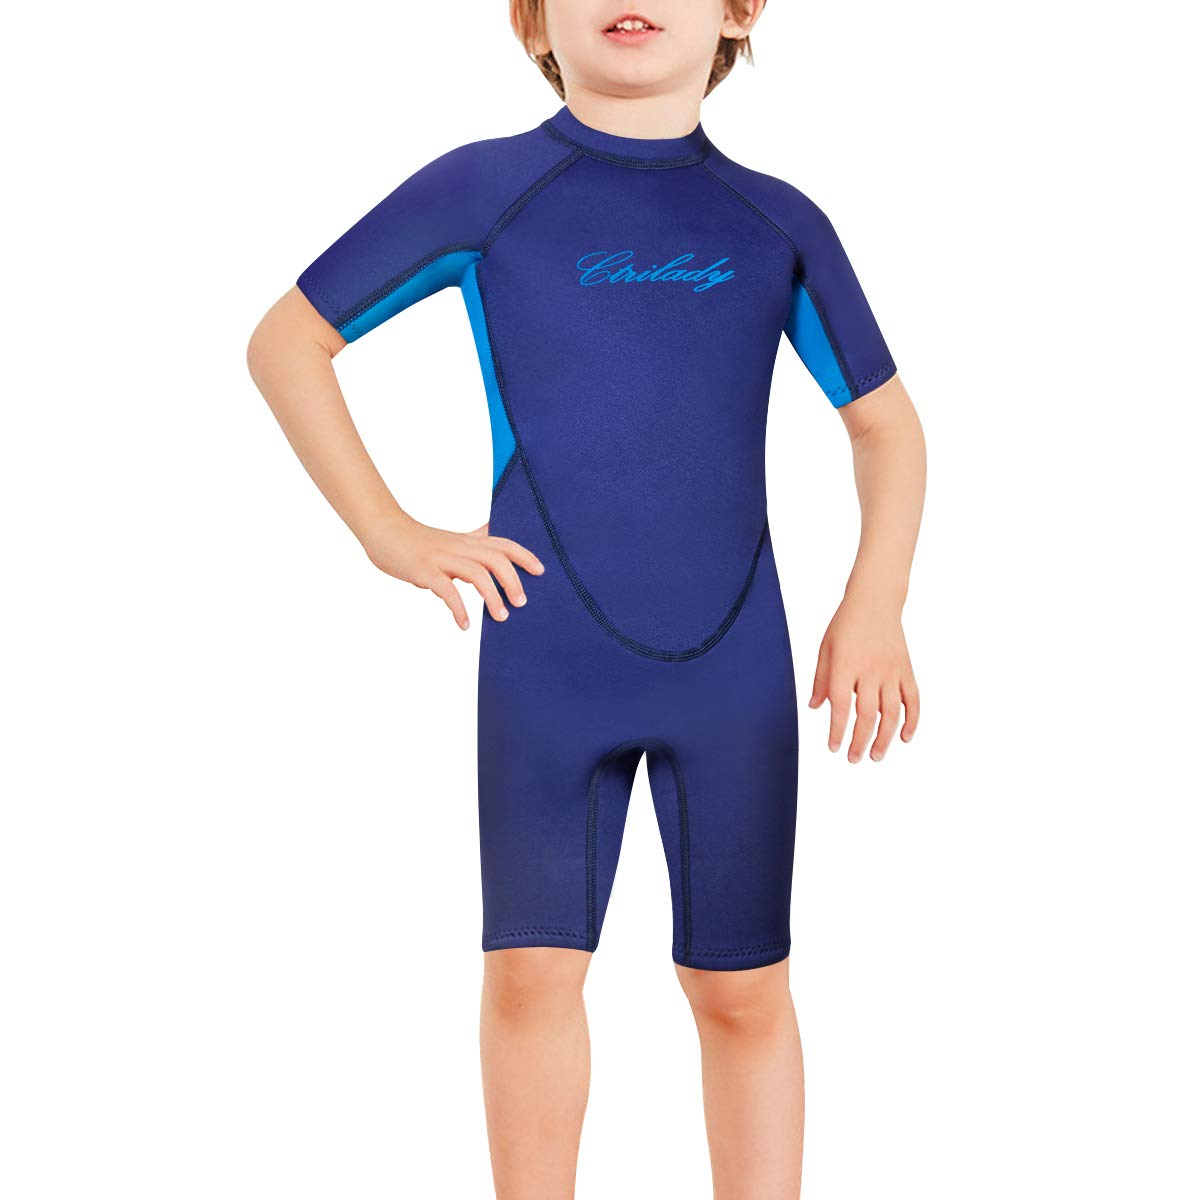 CtriLady Kids Youth Neoprene Wetsuit Keep Warm Swimsuit for Swimming Surfing Snorkeling Diving Water Sports(Blue,3XL) by CtriLady